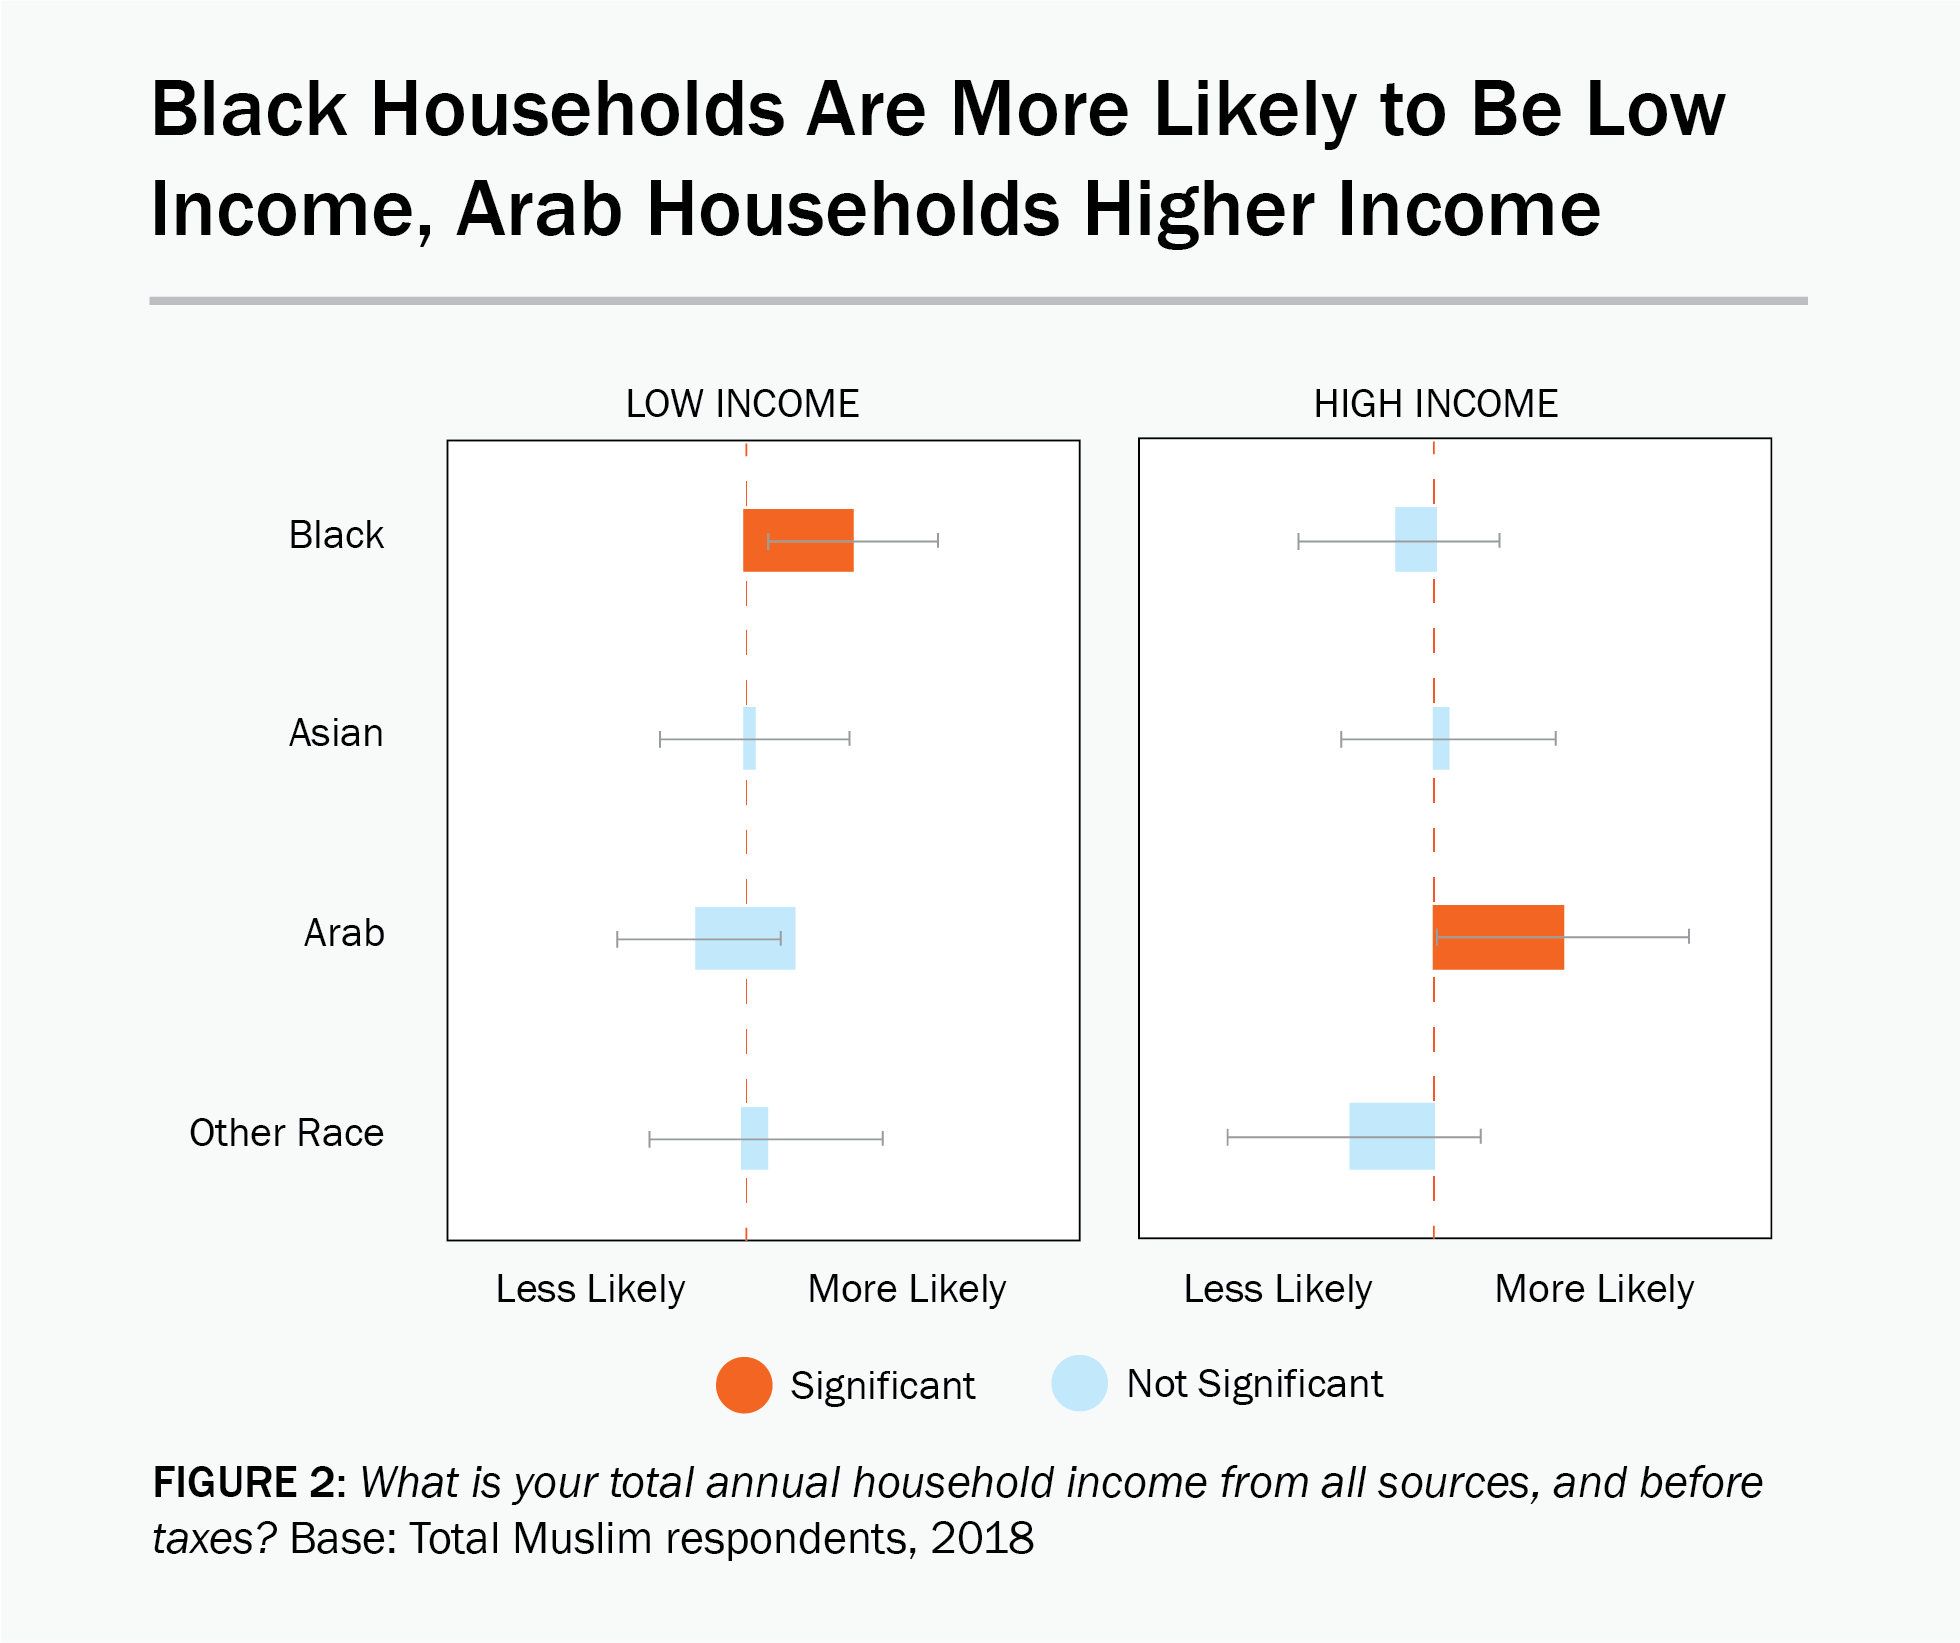 Figure 2: A data chart showing that Black Households are more likely to be low income and Arab households are more likely to be higher income